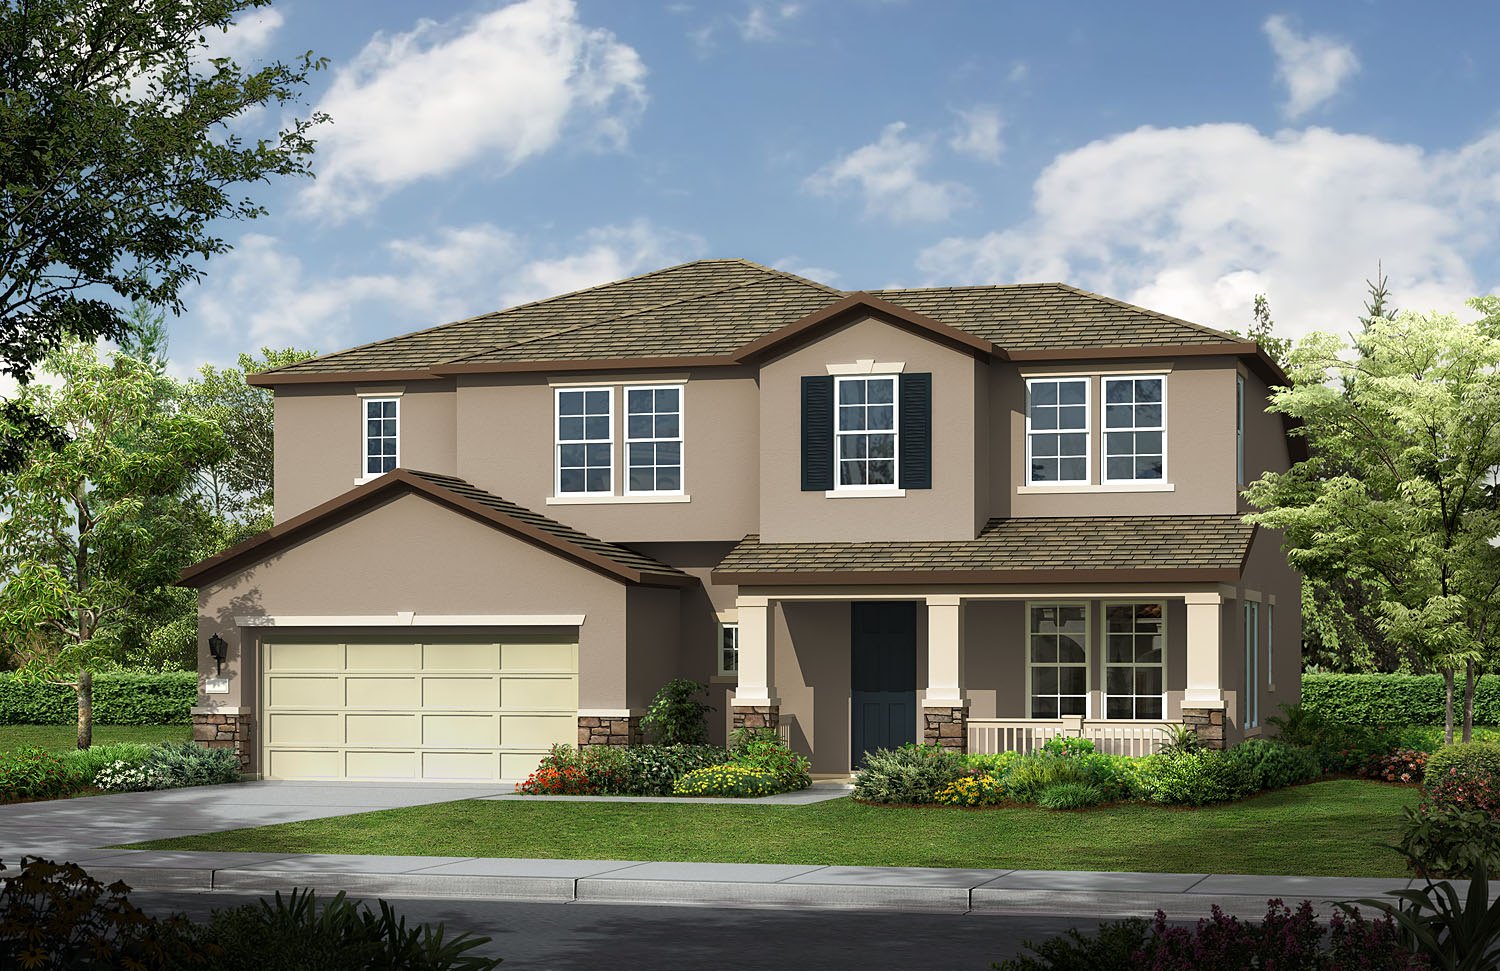 Pulte homes introduces everton grove in eastvale c m Home by home